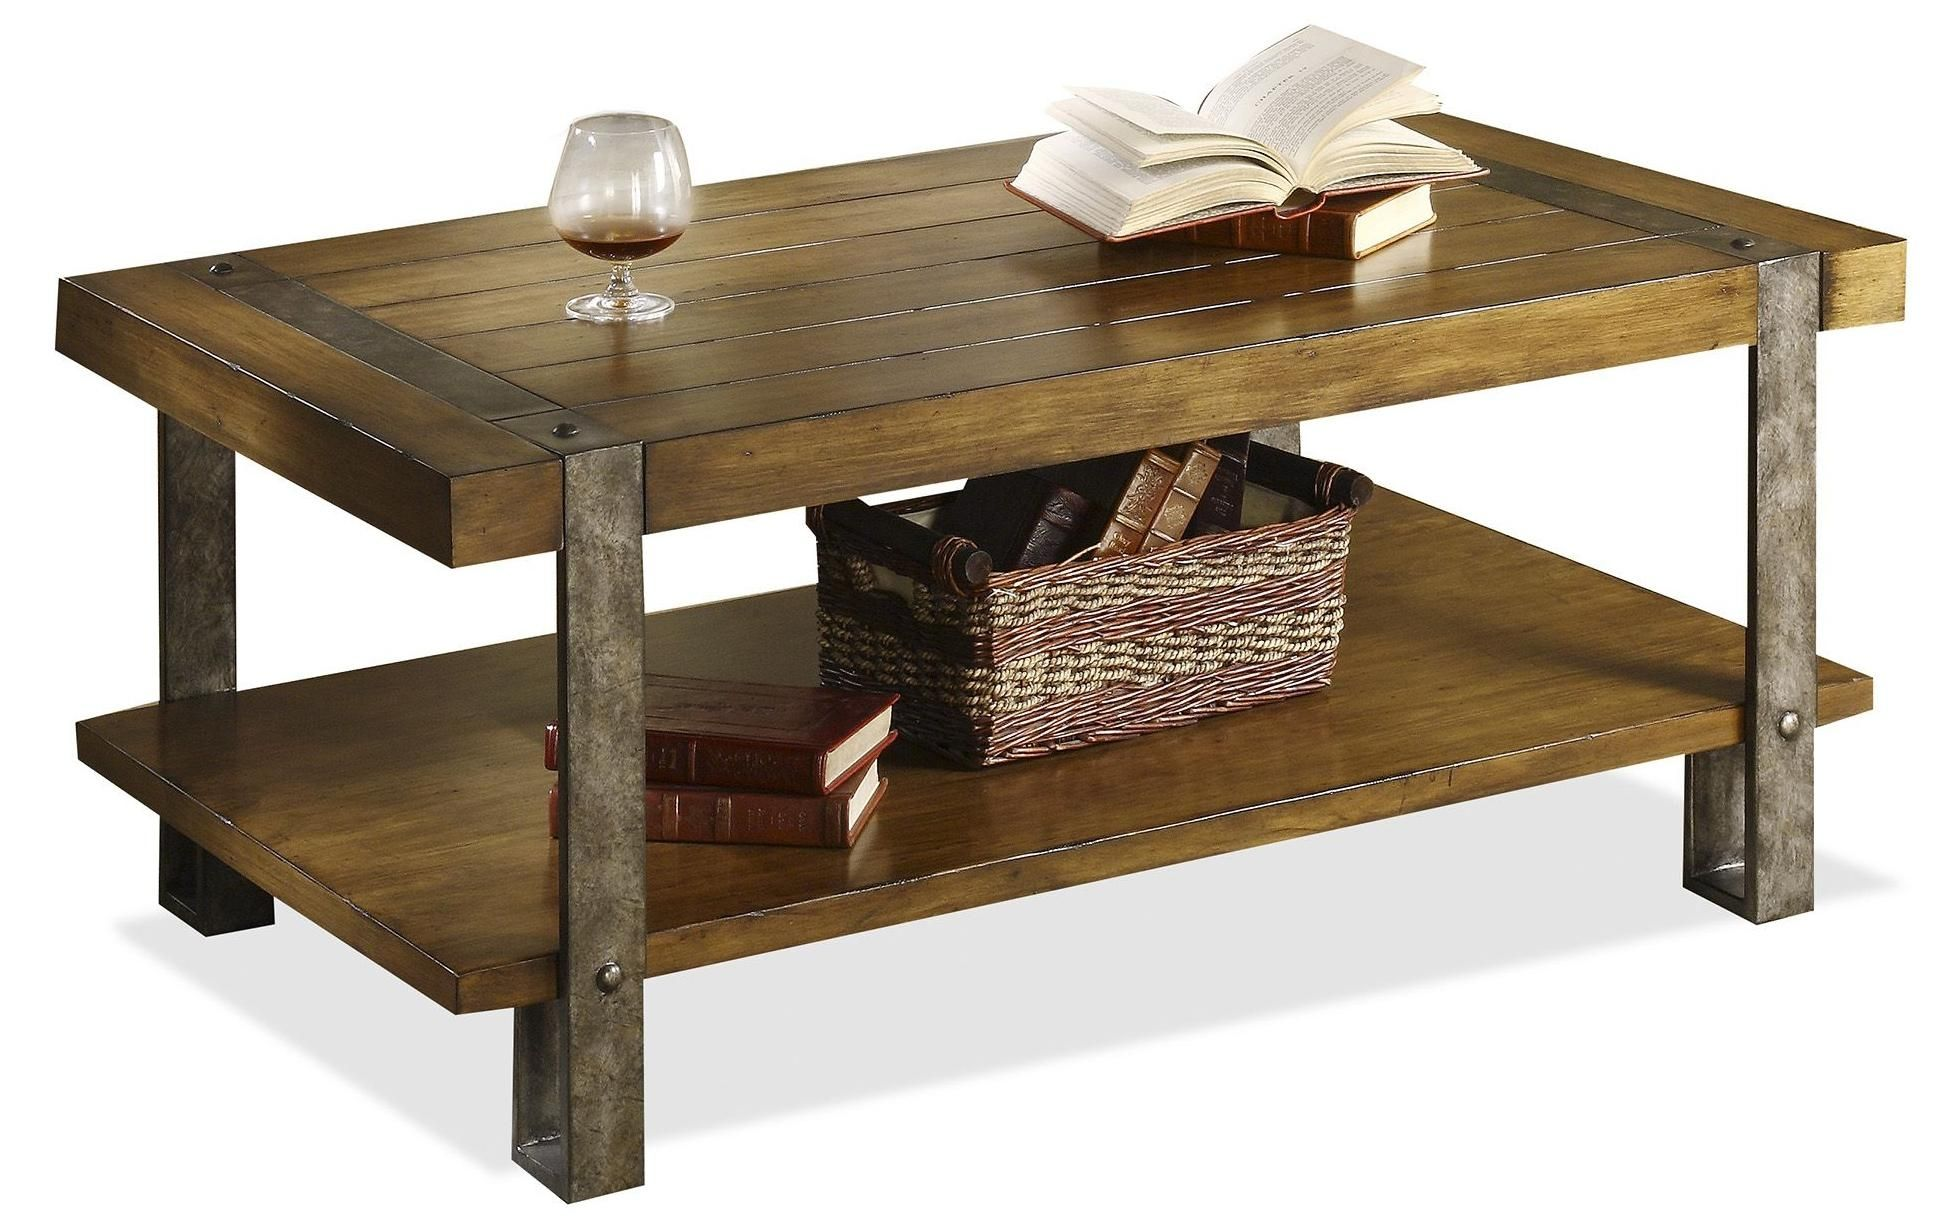 Fred Meyer Coffee Table httptherapybychancecom Pinterest